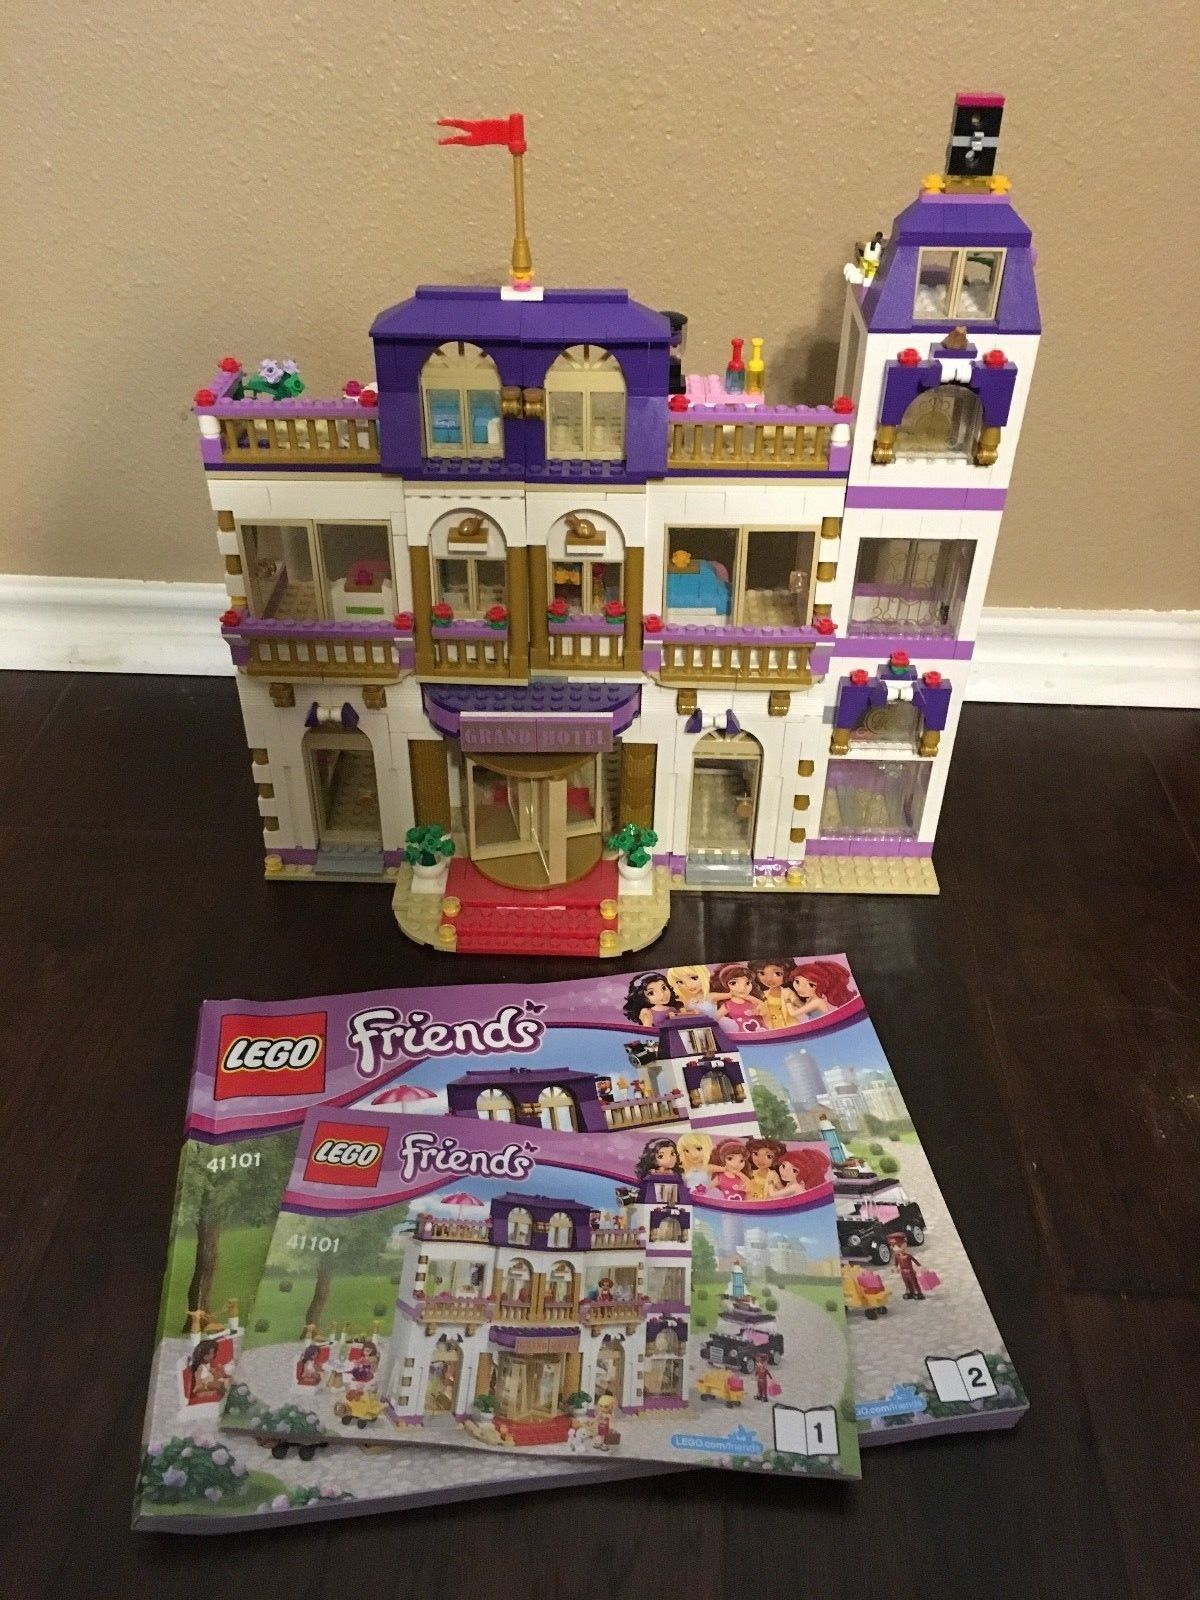 Lego 41101 Friends Heartlake Grand Hotel Taxi Incomplete Set